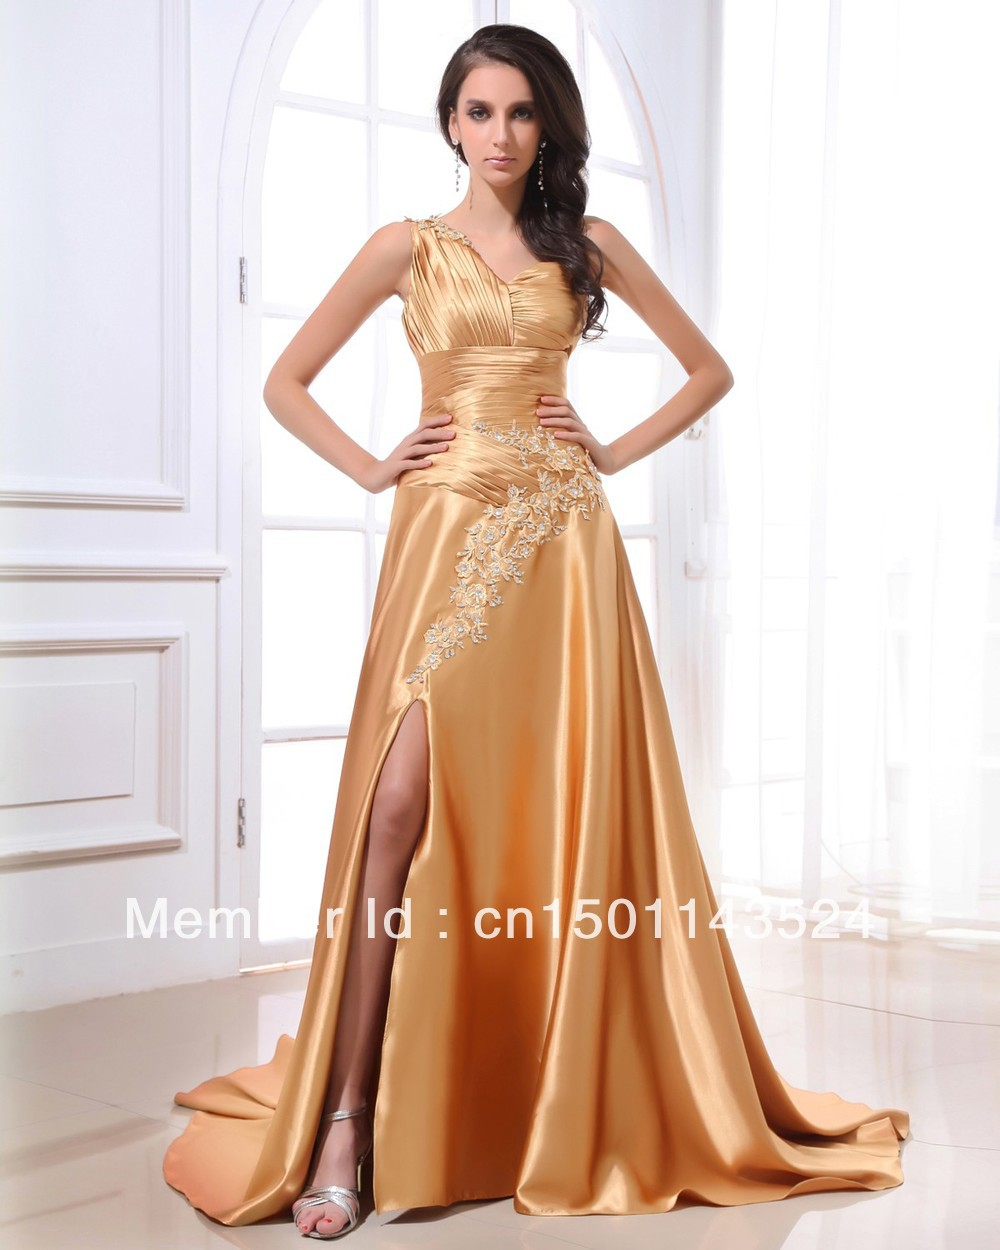 Free Shiping 2013 New Arrival Formal Evening Dresses Sexy One Shoulder Long Gold Stain Prom Dress With Appliques(China (Mainland))